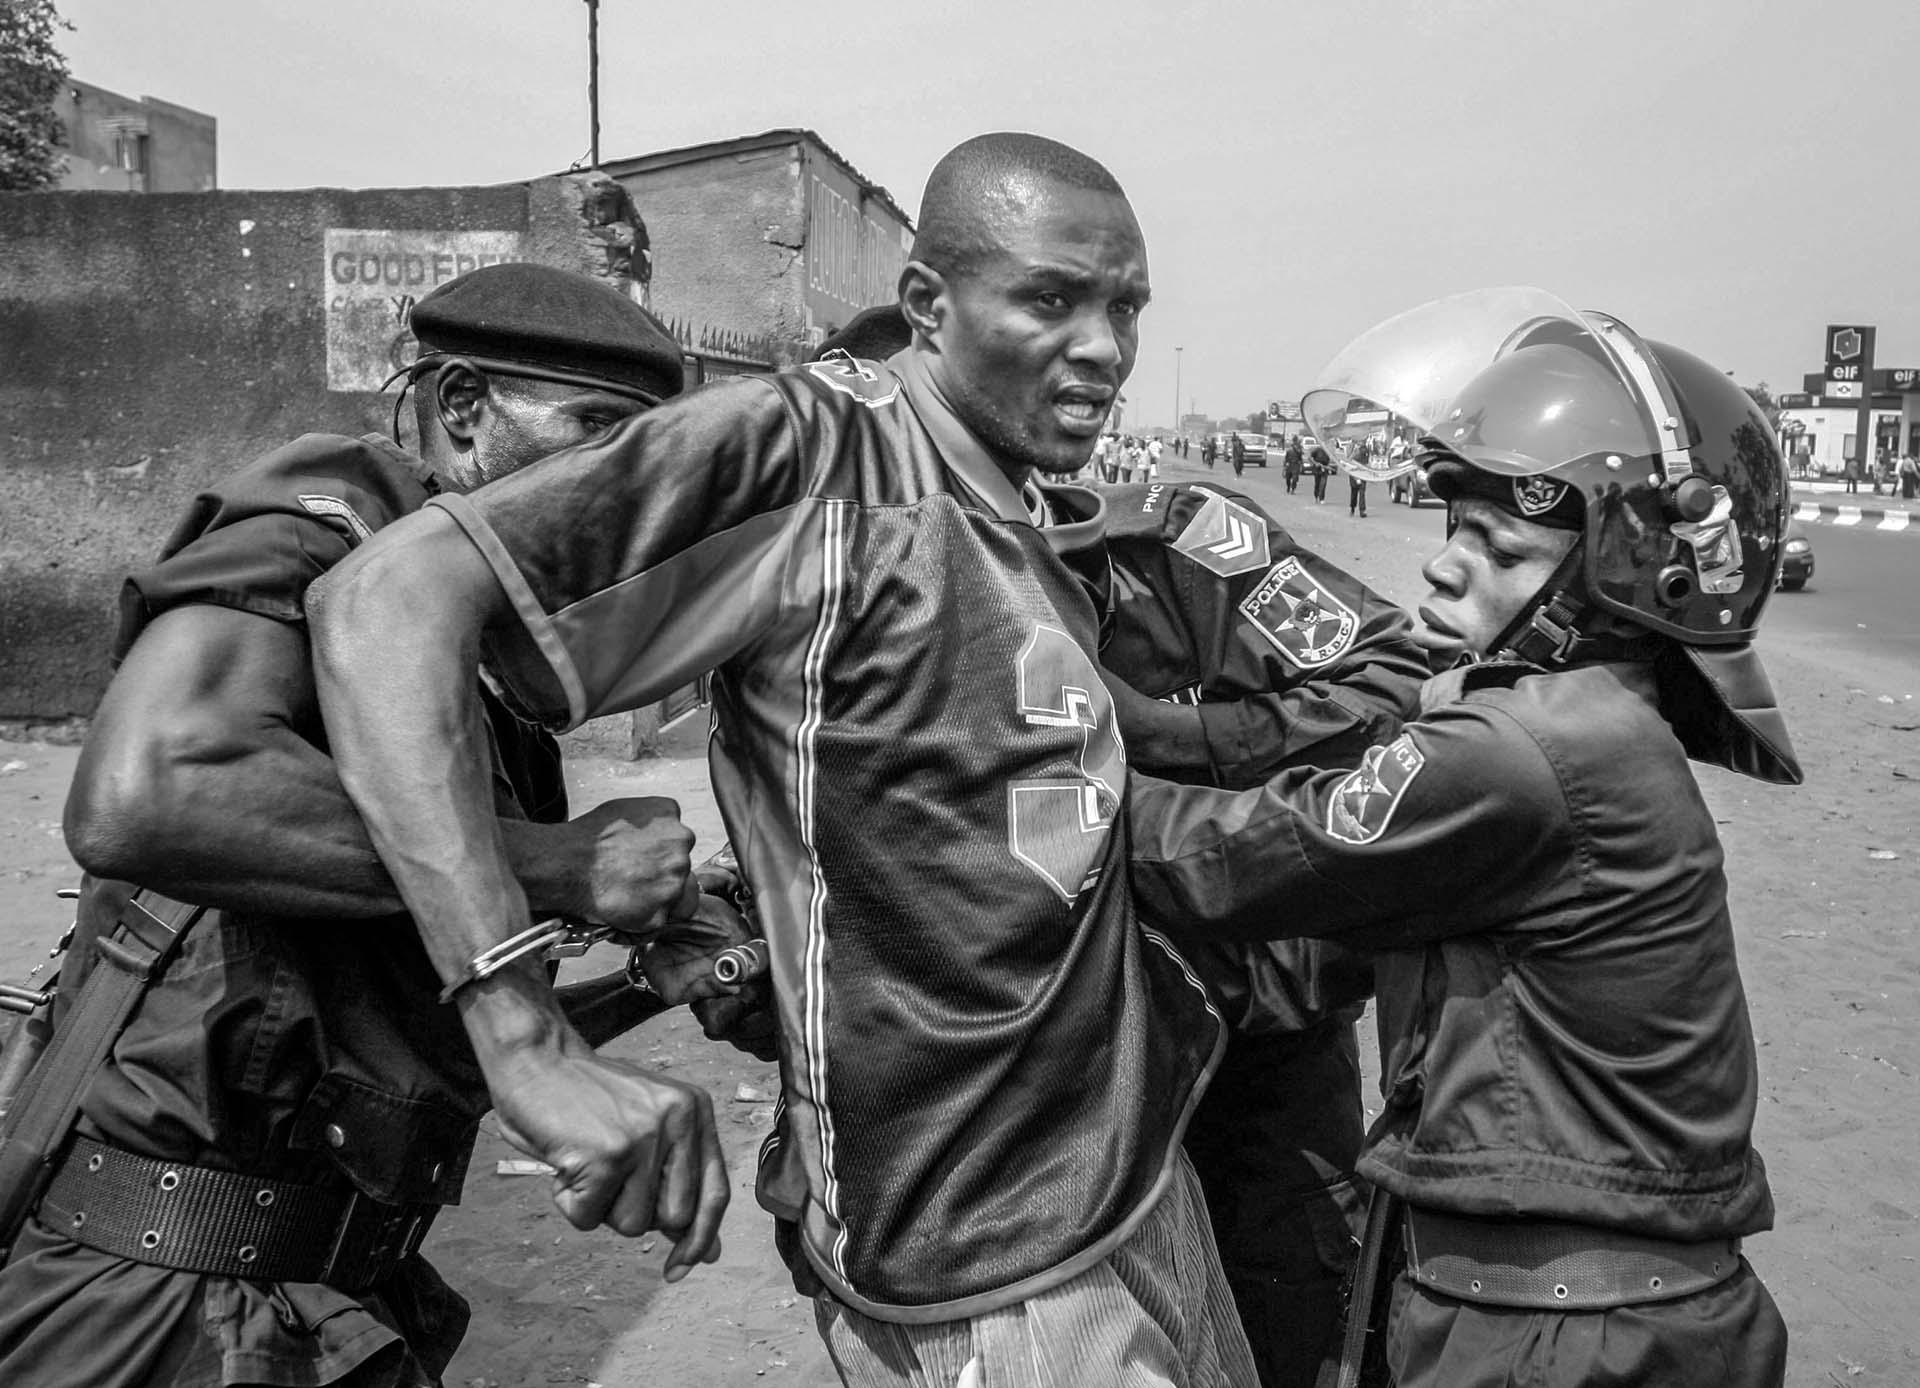 Riot police arrest a supporter of UDPS, Congo's main opposition party which boycotted the upcoming Presidential and National election, on the street of Kinshasa, DR Congo on June 30, 2006, the nation's independence day.